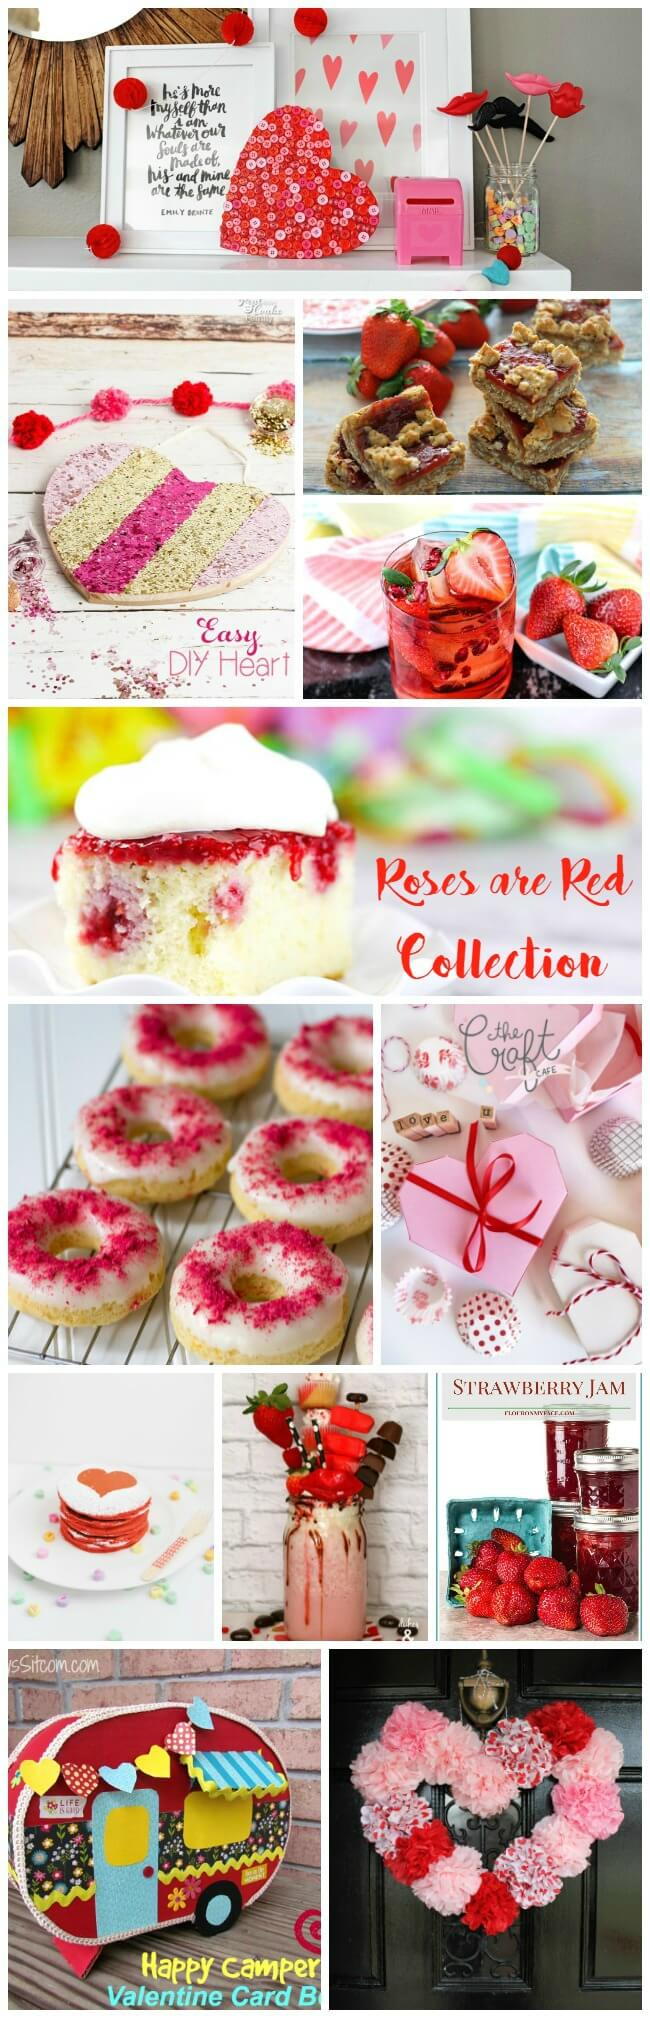 Roses are Red, Violets are blue, I'm Loving all these red themed sweets, how about you? With sweet treats and crafts, all that you need for Valentine's Day is here.